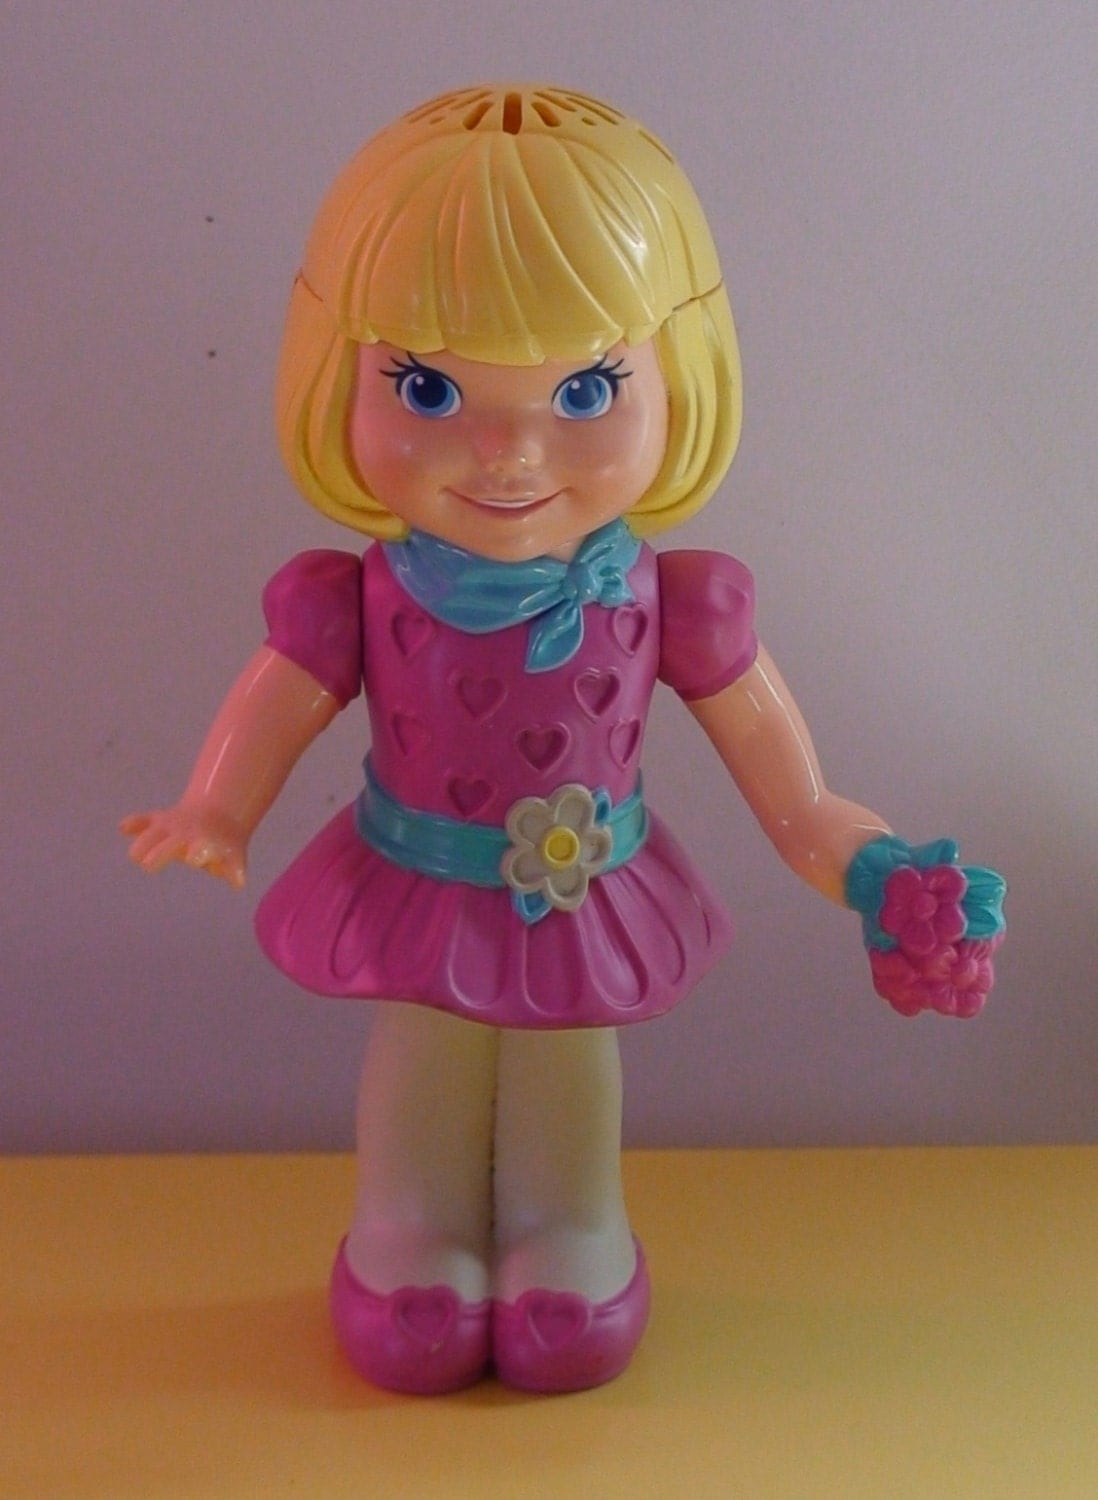 Vintage Hair Do Dolly Play Doh Doll Kenner 1991